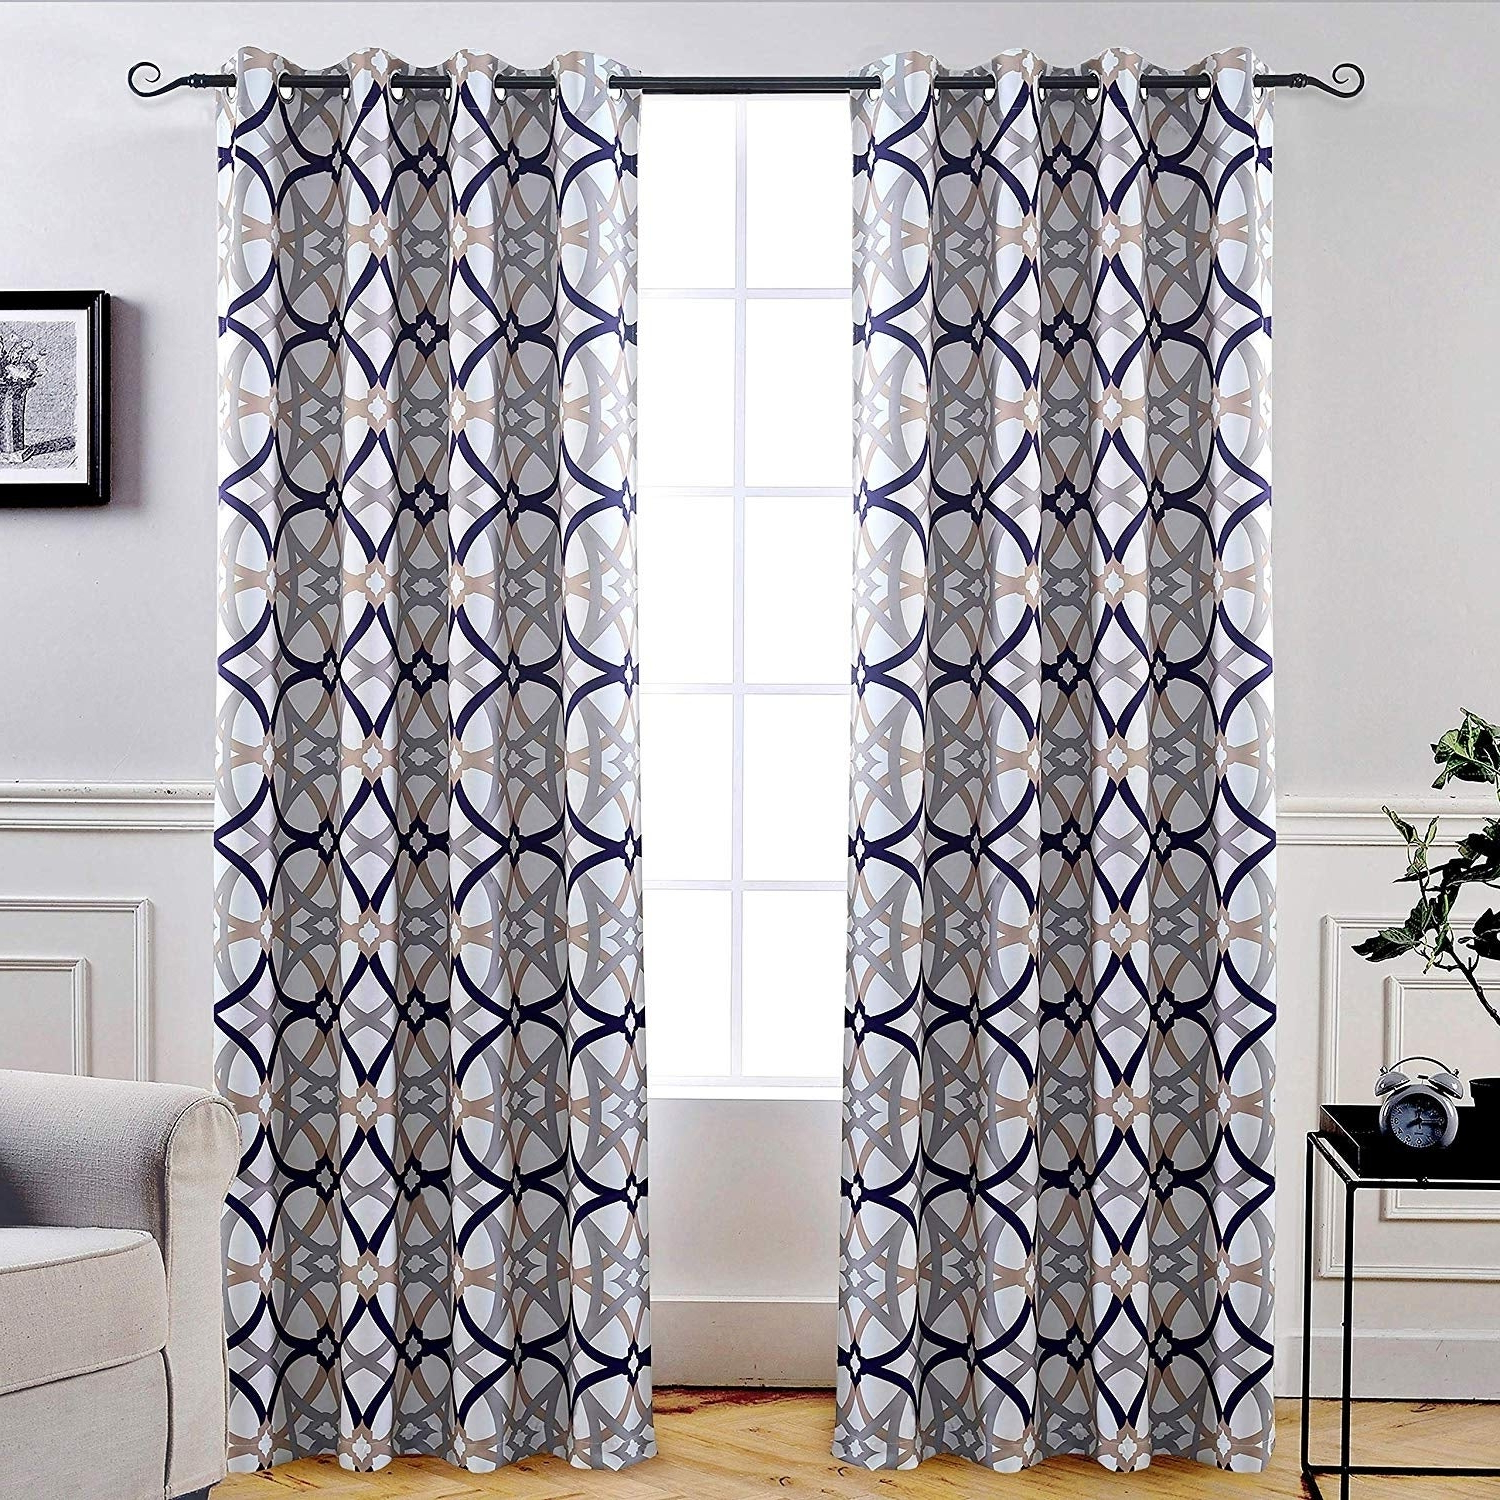 Carson Carrington Jarvenpaa Insulated Blackout Grommet Window Curtain Panel Pair Pertaining To Most Recent Insulated Blackout Grommet Window Curtain Panel Pairs (View 5 of 20)